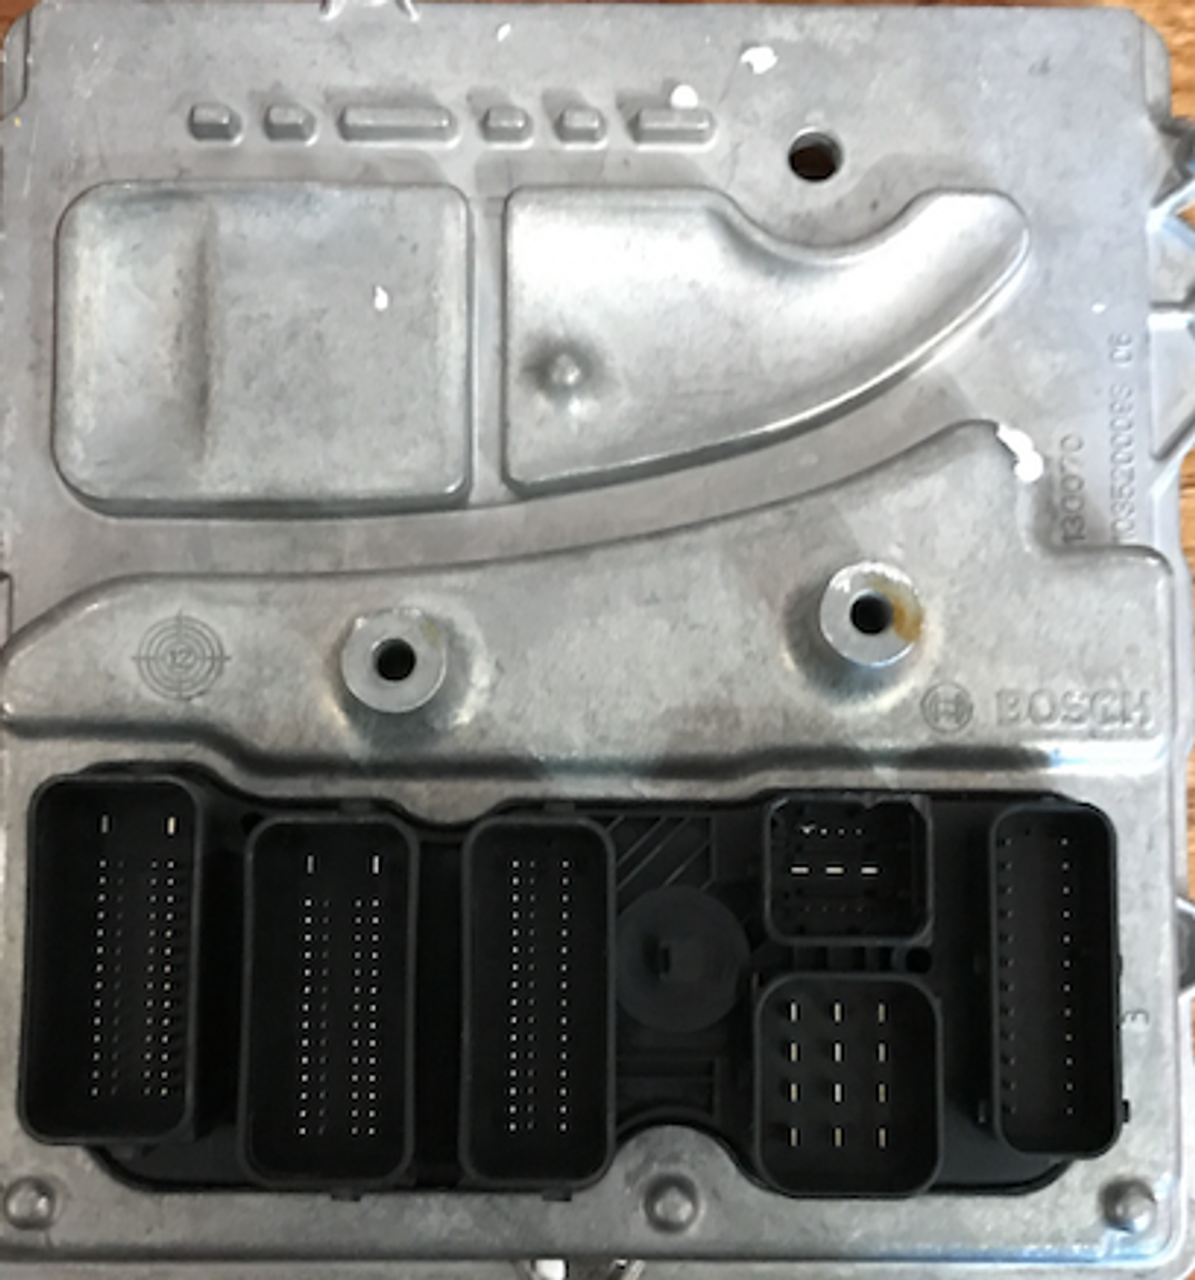 BMW X5, 0 261 S08 997, 0261S08997, DME8606310, DME 8 606 310